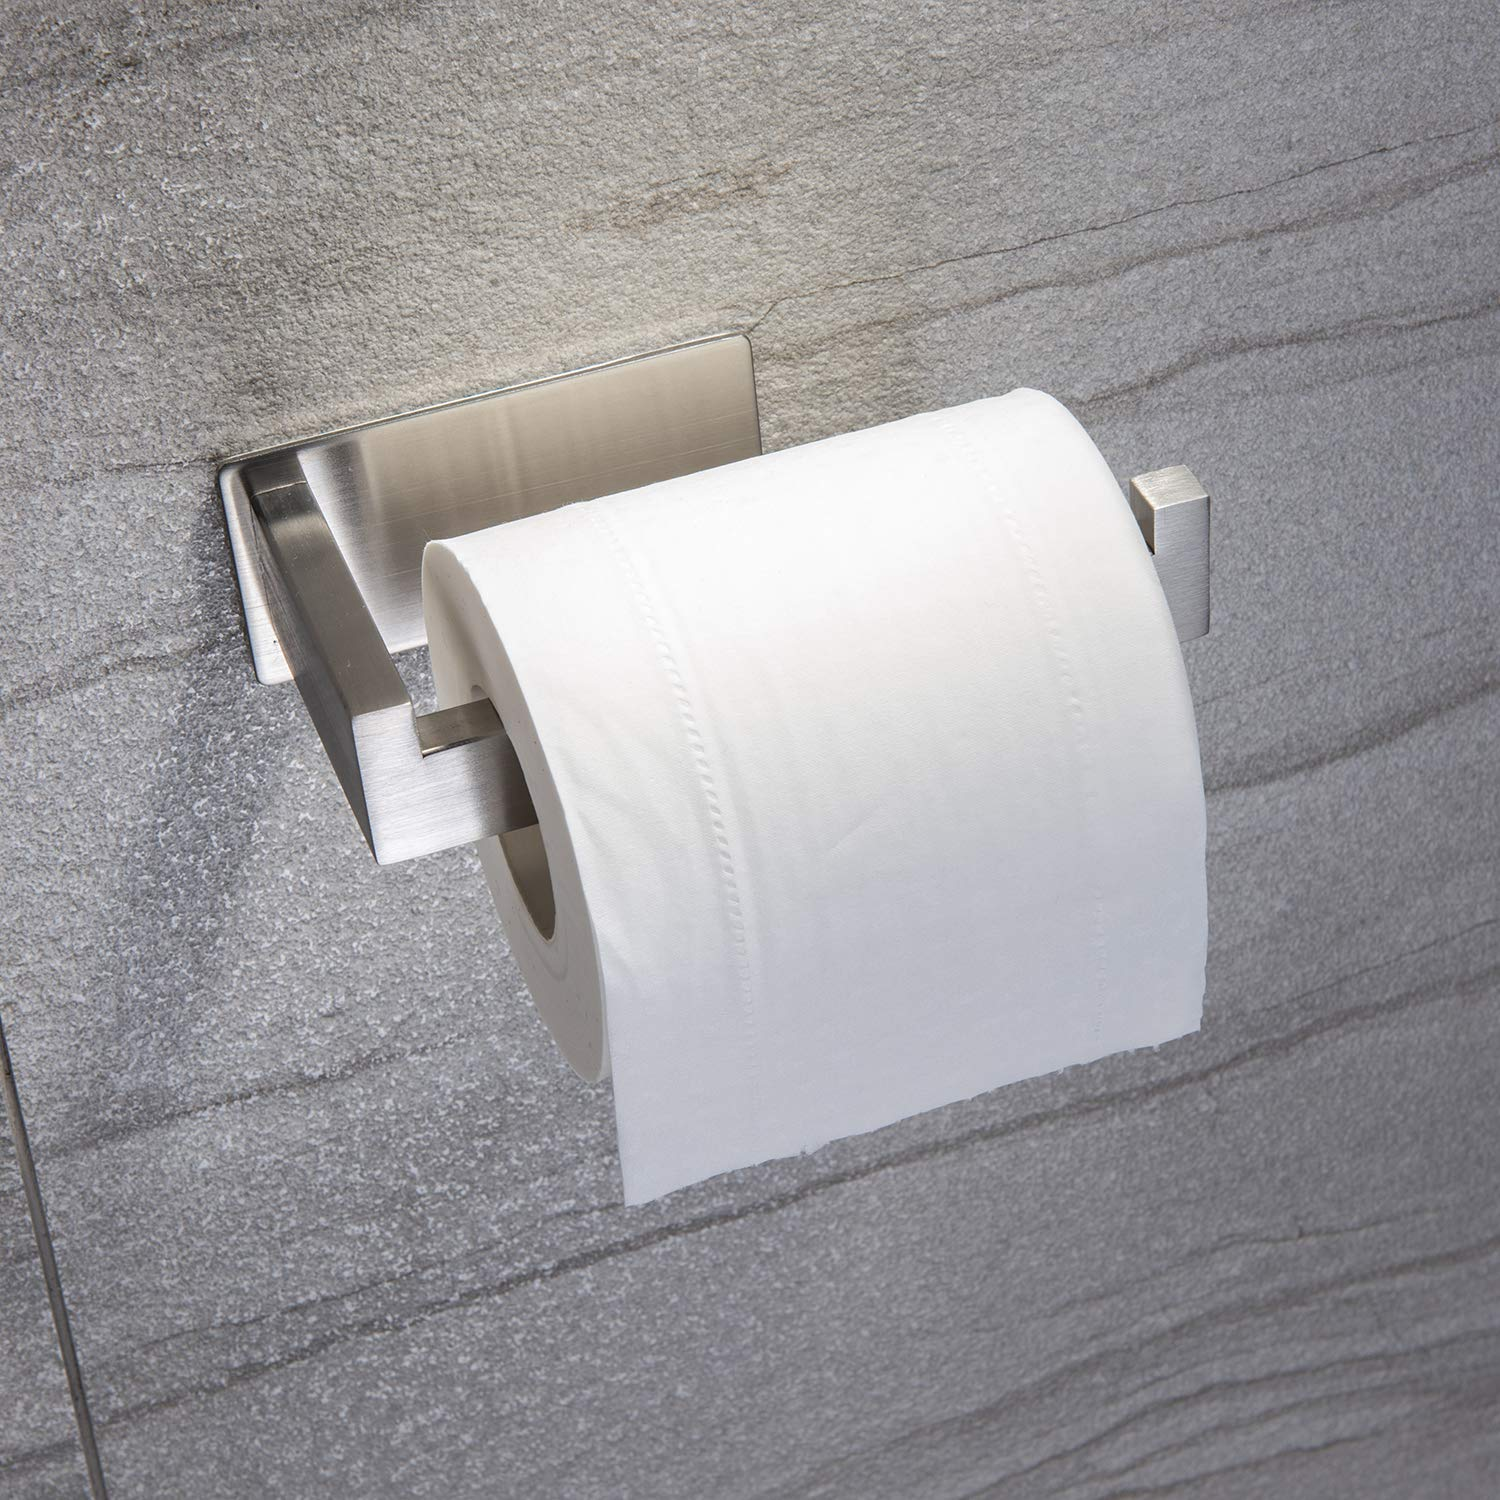 Taozun Toilet Paper Holder 3M Self Adhesive Bathroom Roll Holder Stick on Wall SUS 304 Stainless Steel Brushed by Taozun (Image #2)